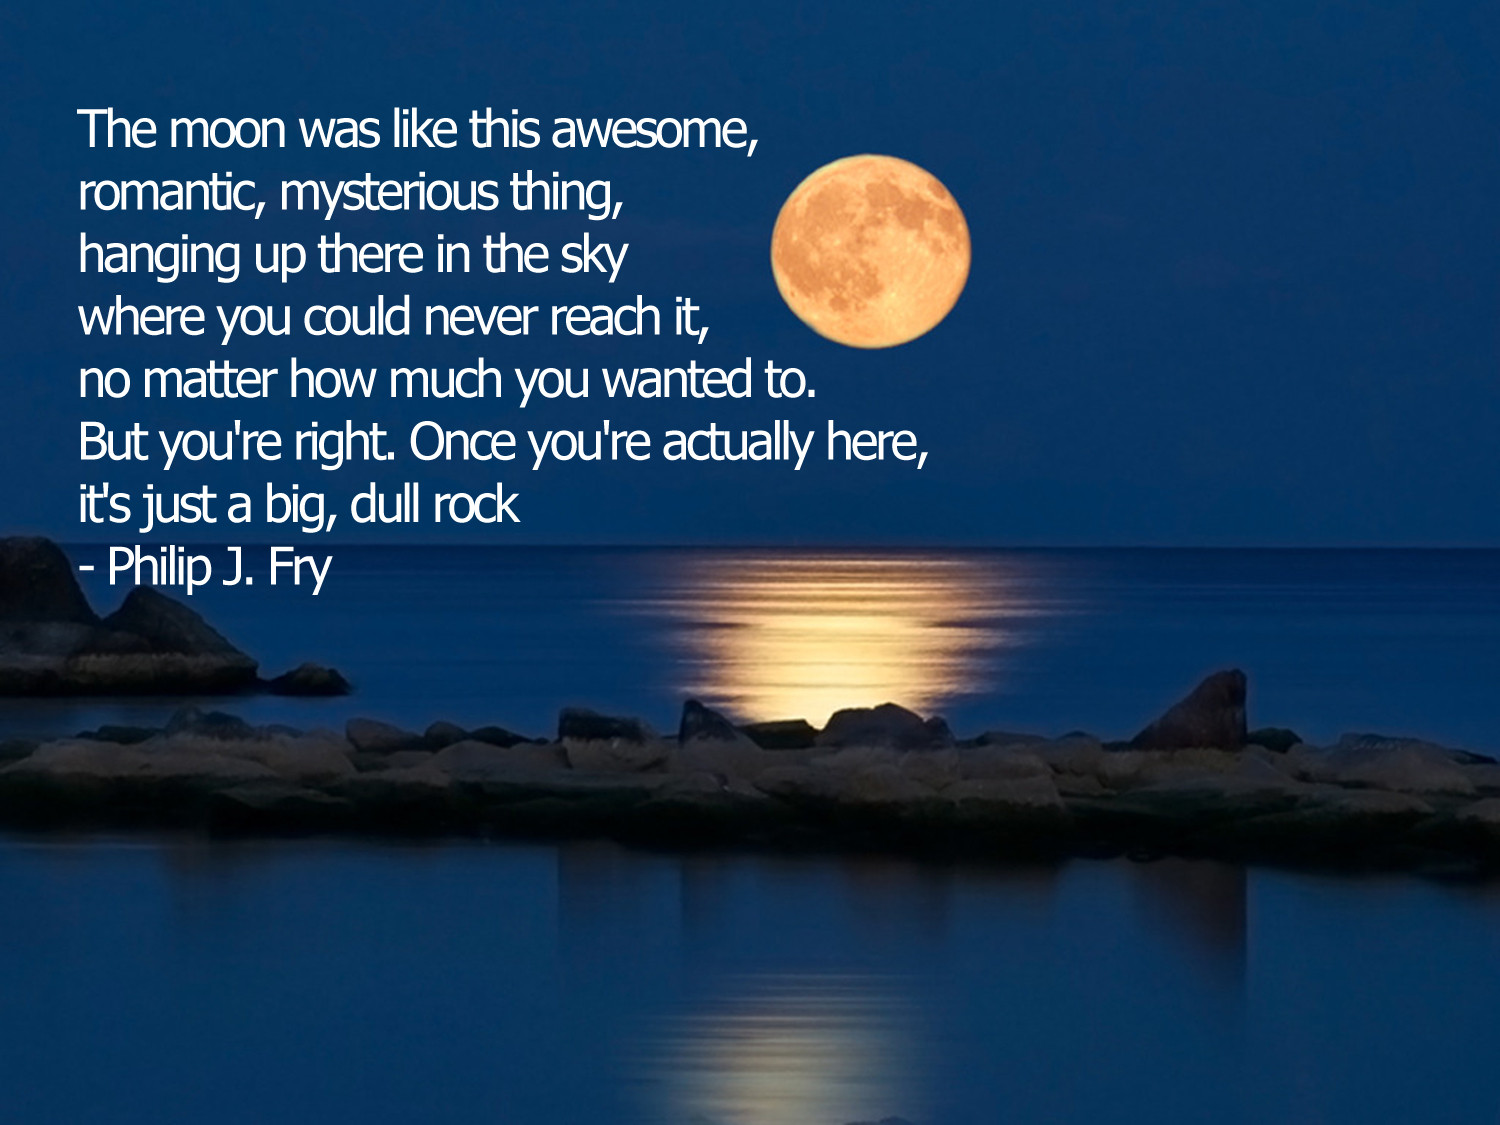 Quotes Words Sayings: Moonshine Sayings And Quotes. QuotesGram